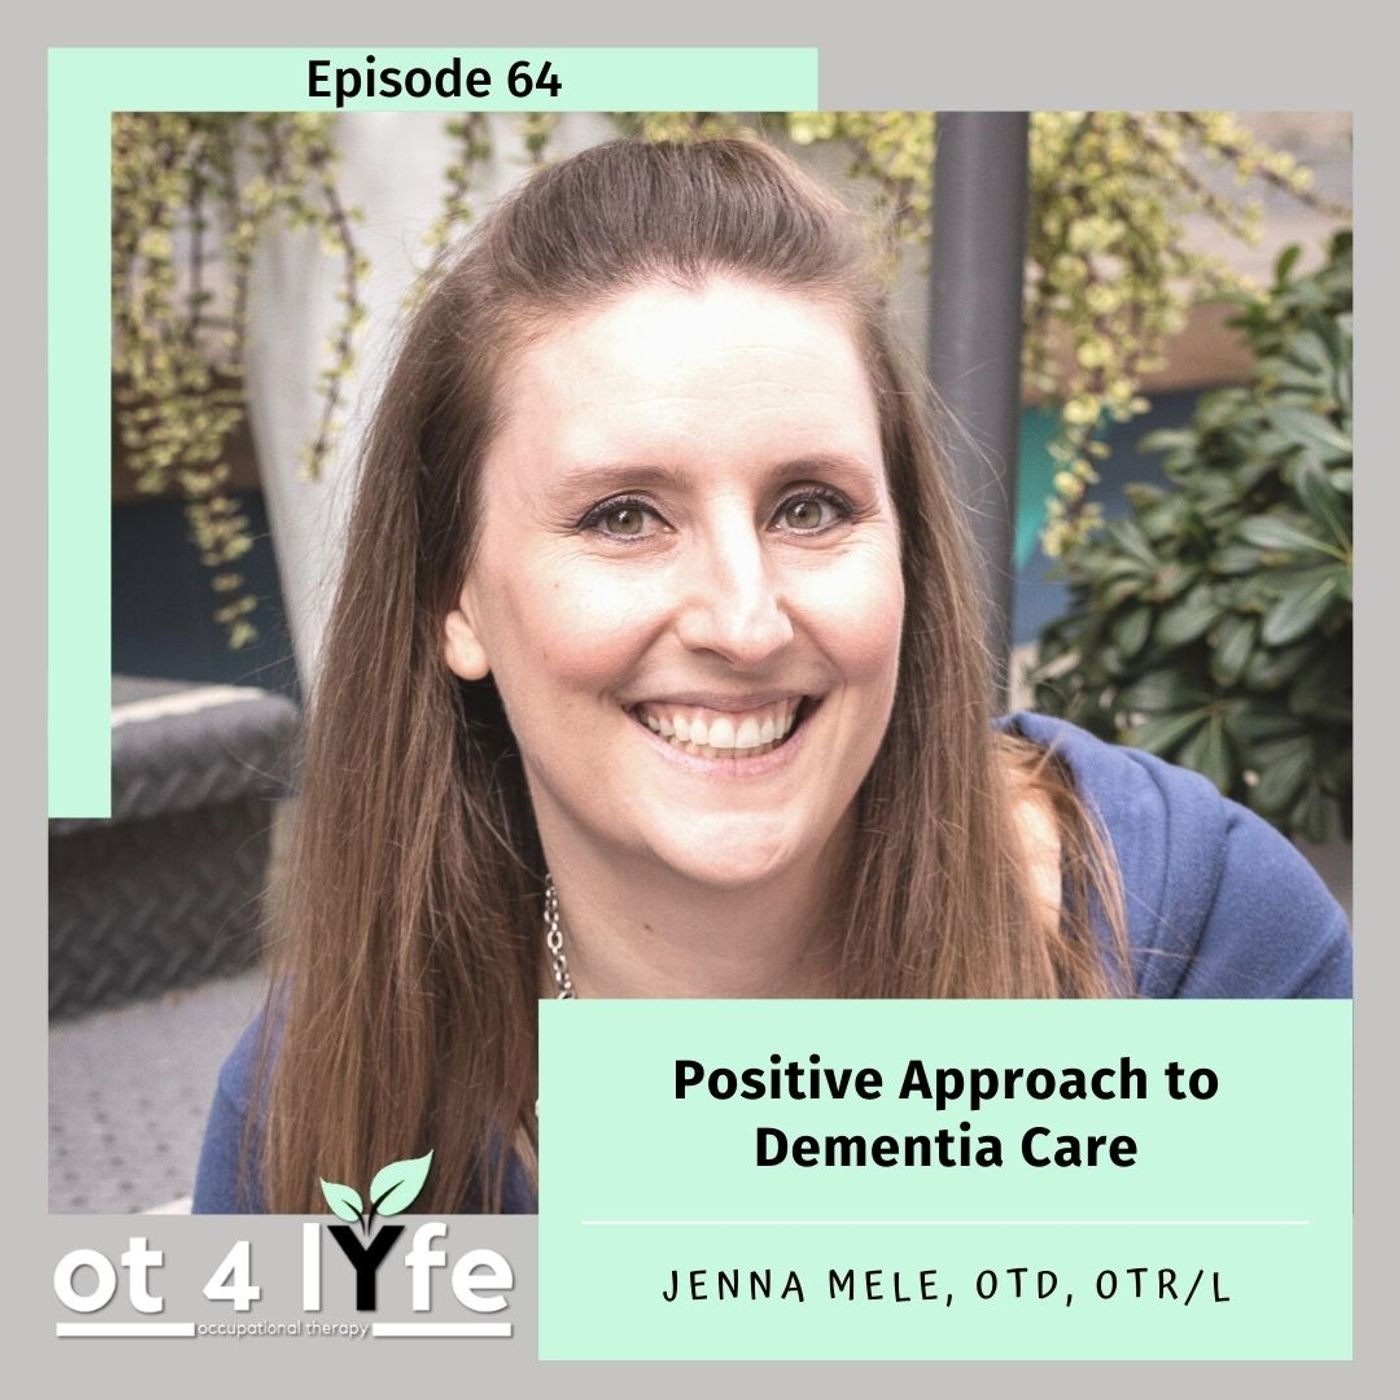 Positive Approach to Dementia Care with Jenna Mele